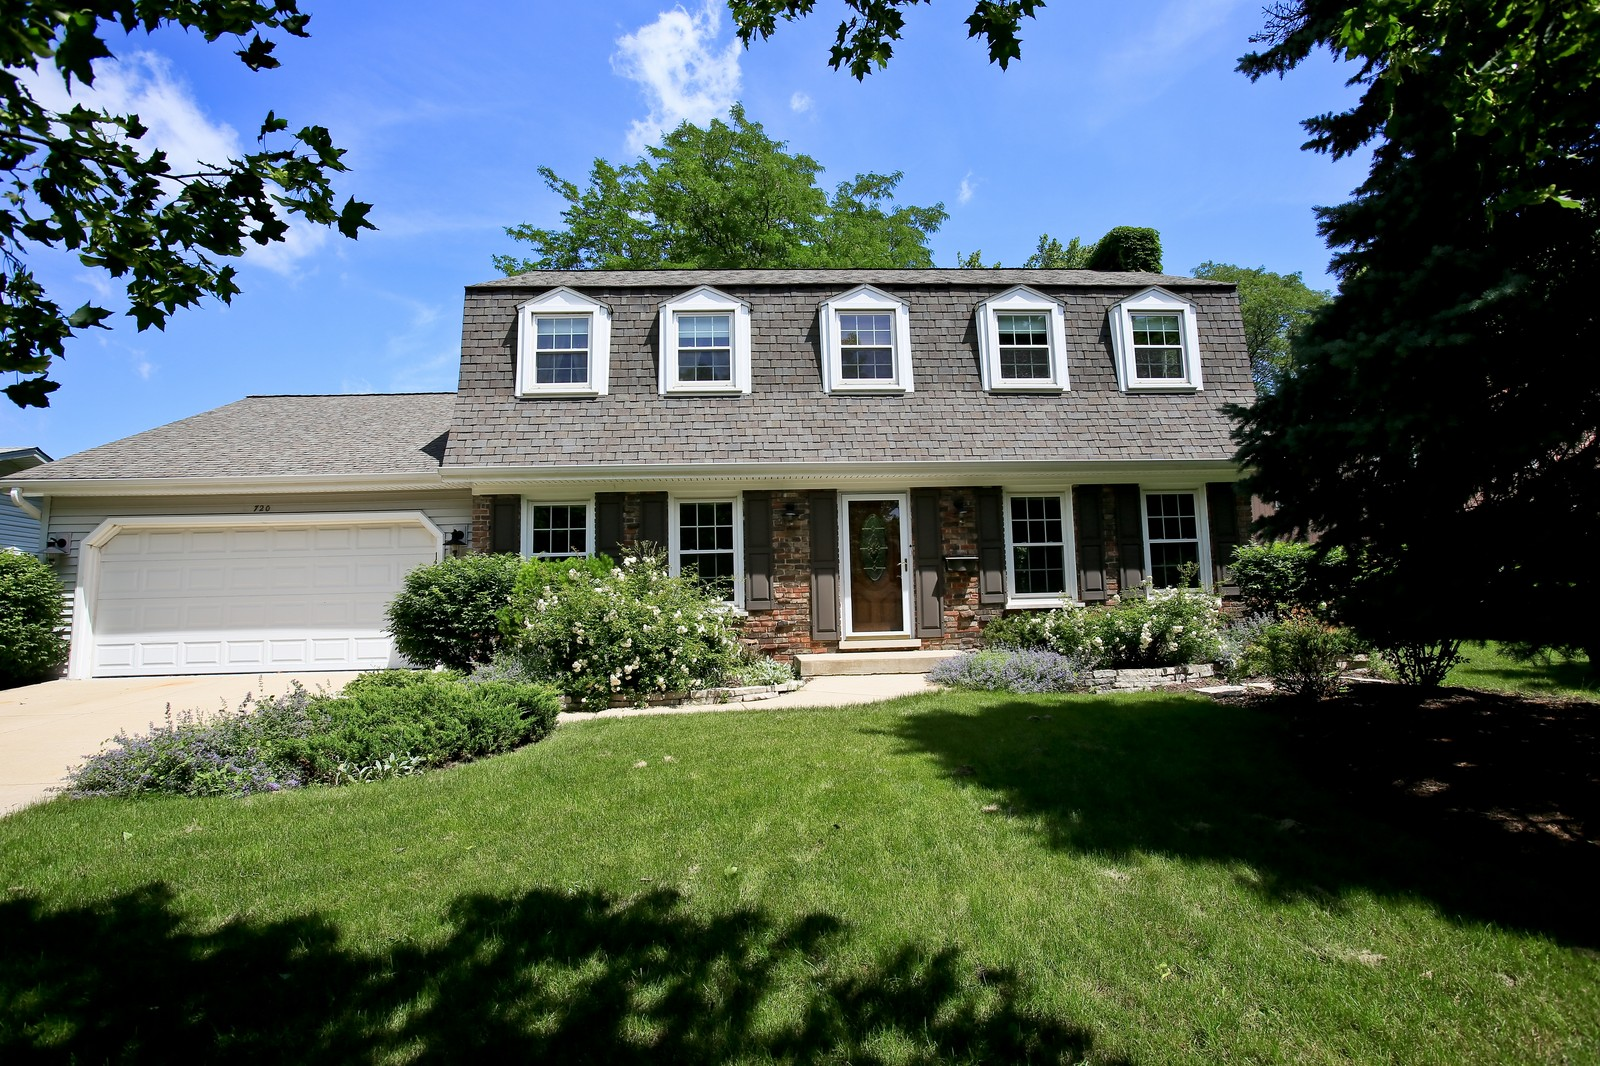 Real Estate Photography - 720 61st St, Downers Grove, IL, 60516 - Front View